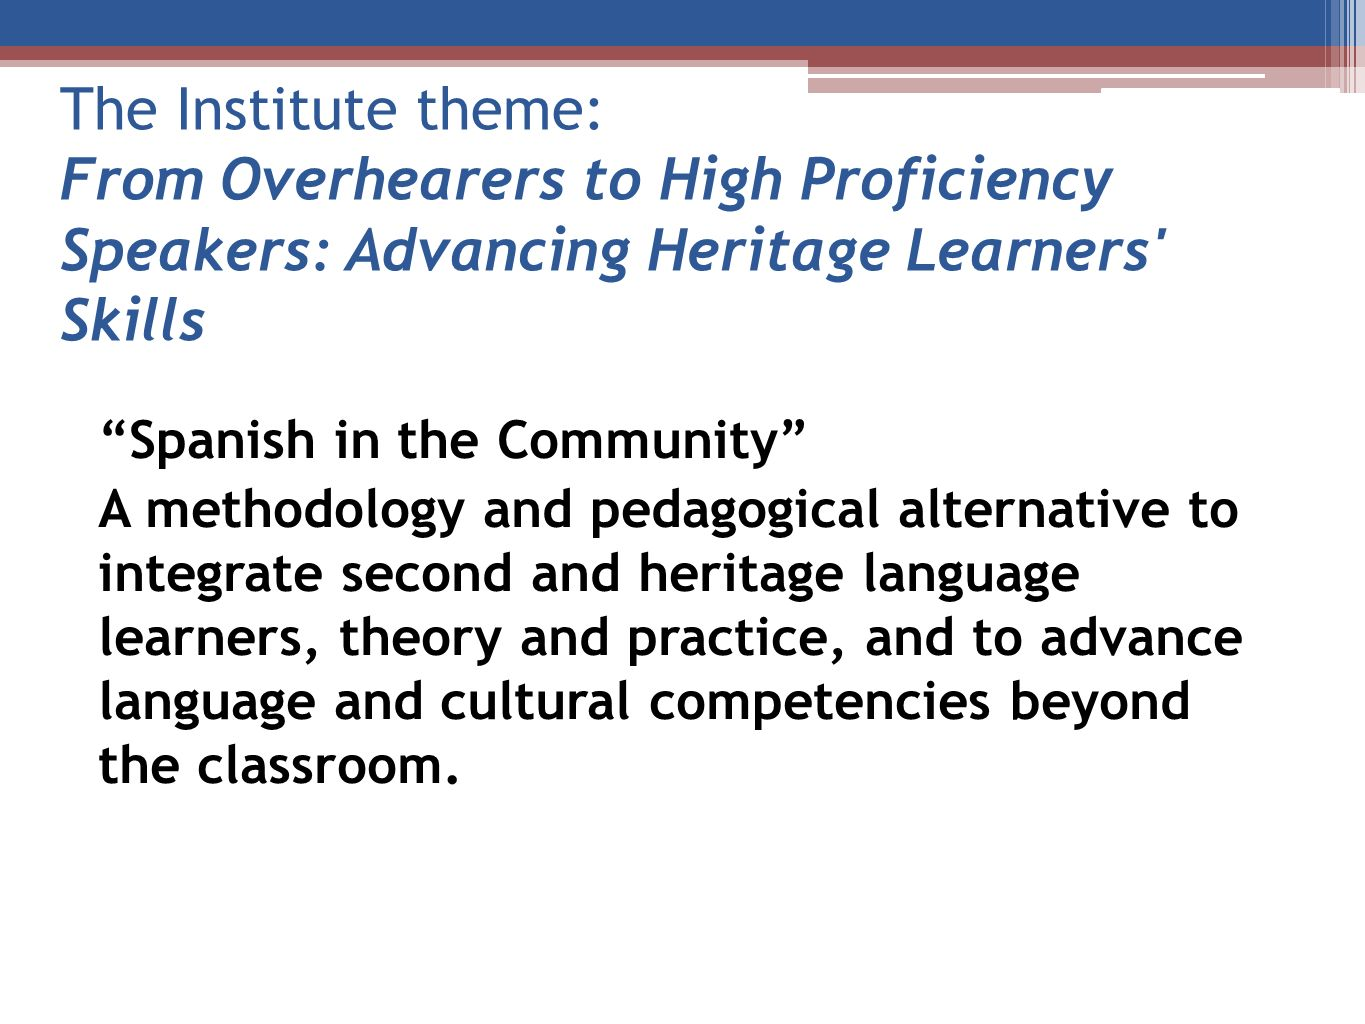 The Institute theme: From Overhearers to High Proficiency Speakers: Advancing Heritage Learners' Skills Spanish in the Community A methodology and ped